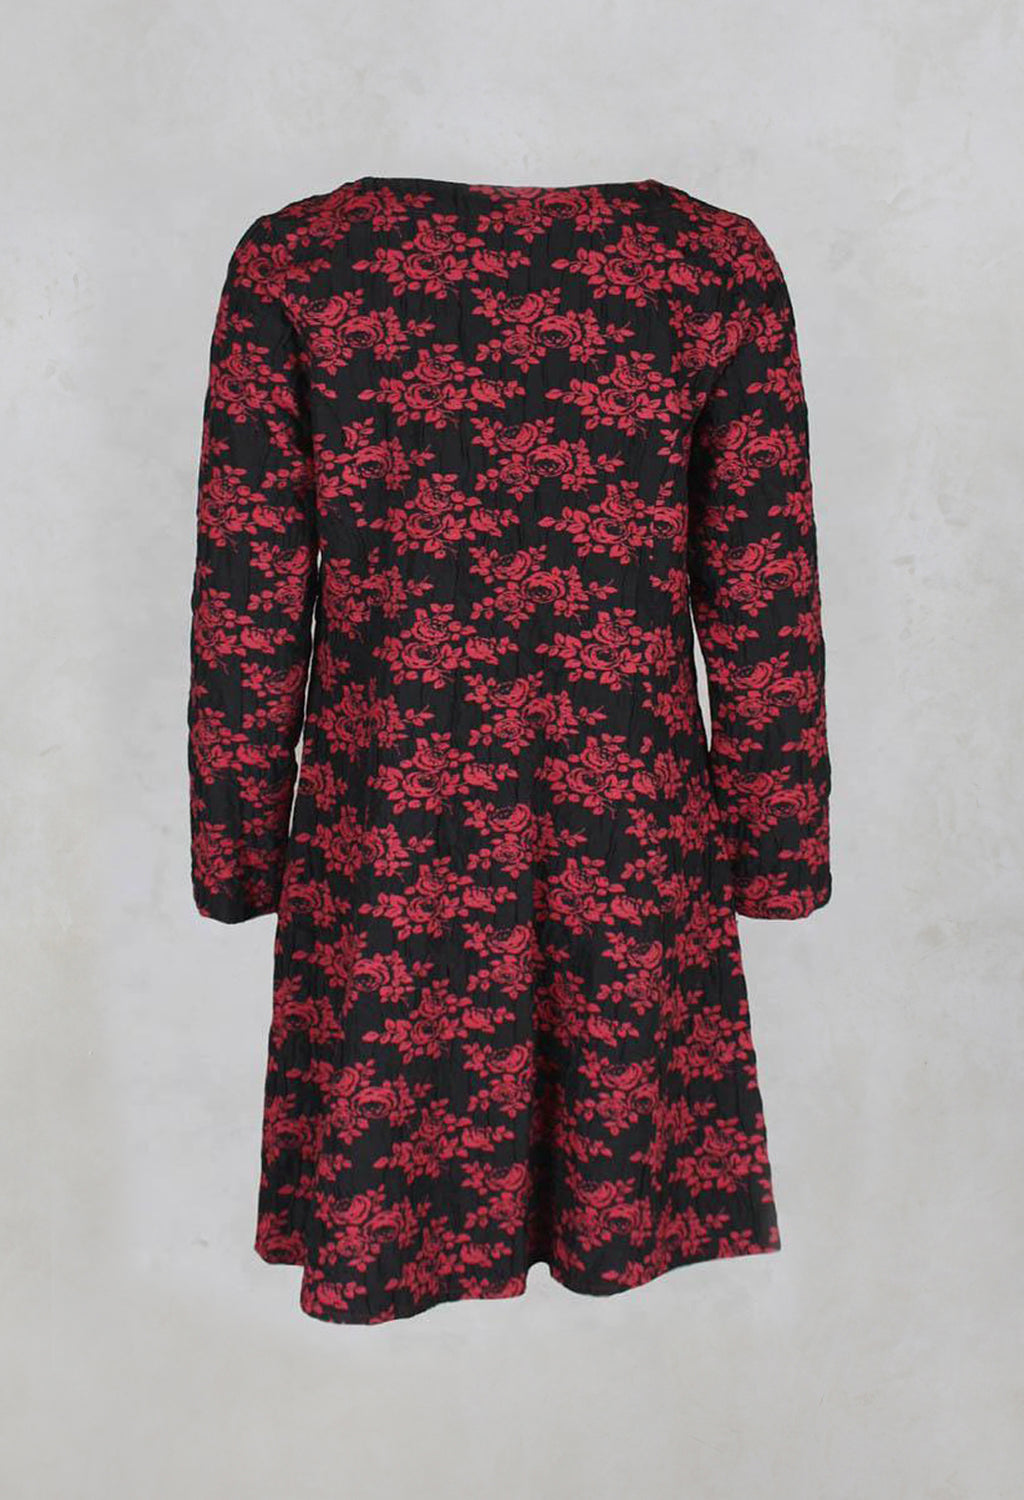 Floral Pattern Tunic Dress in Cherry